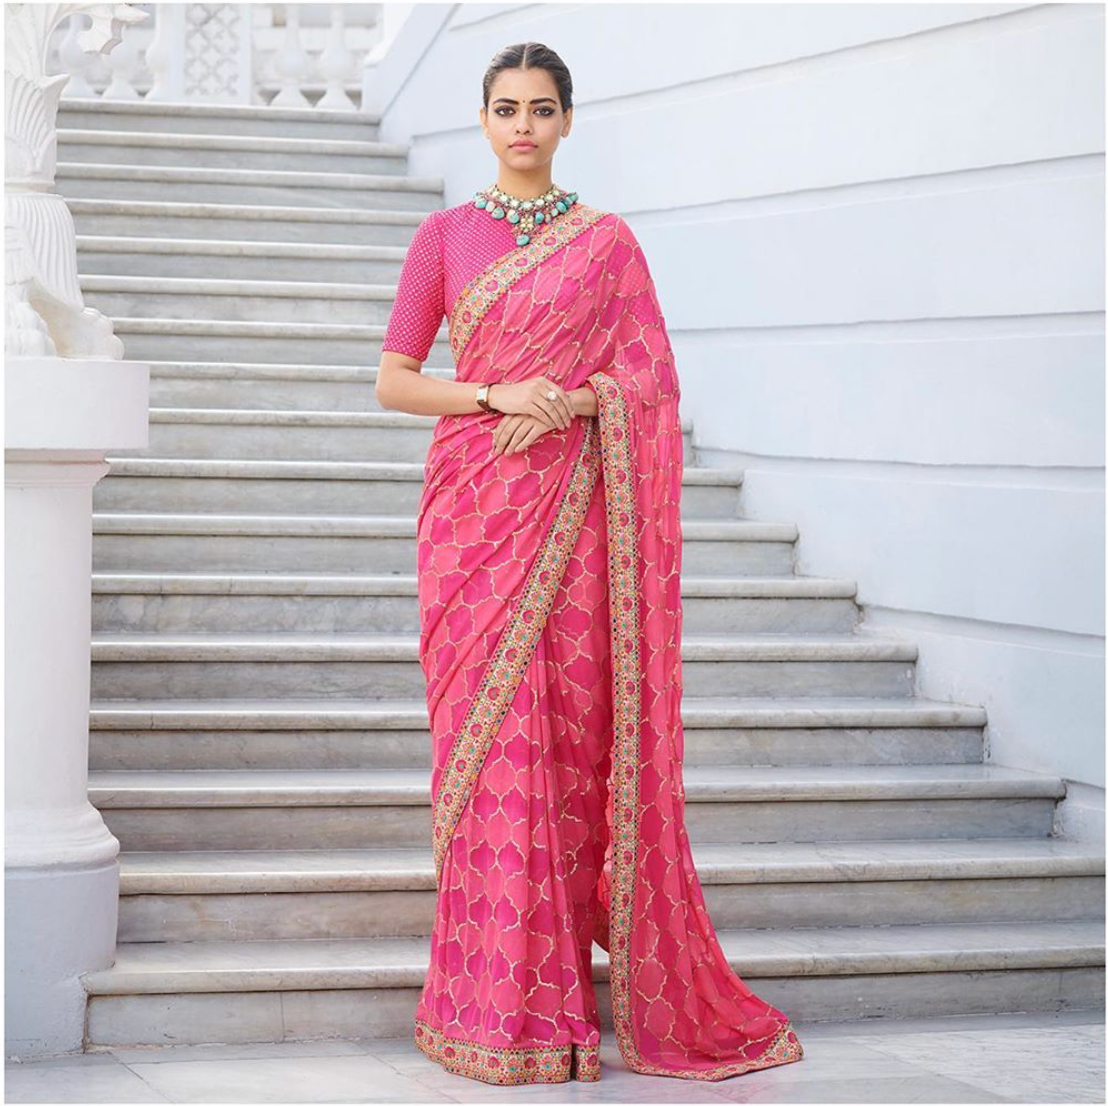 Sabyasachi Summer 2020 Summer Wedding Jaisalmer Sari - The Grand Trunk